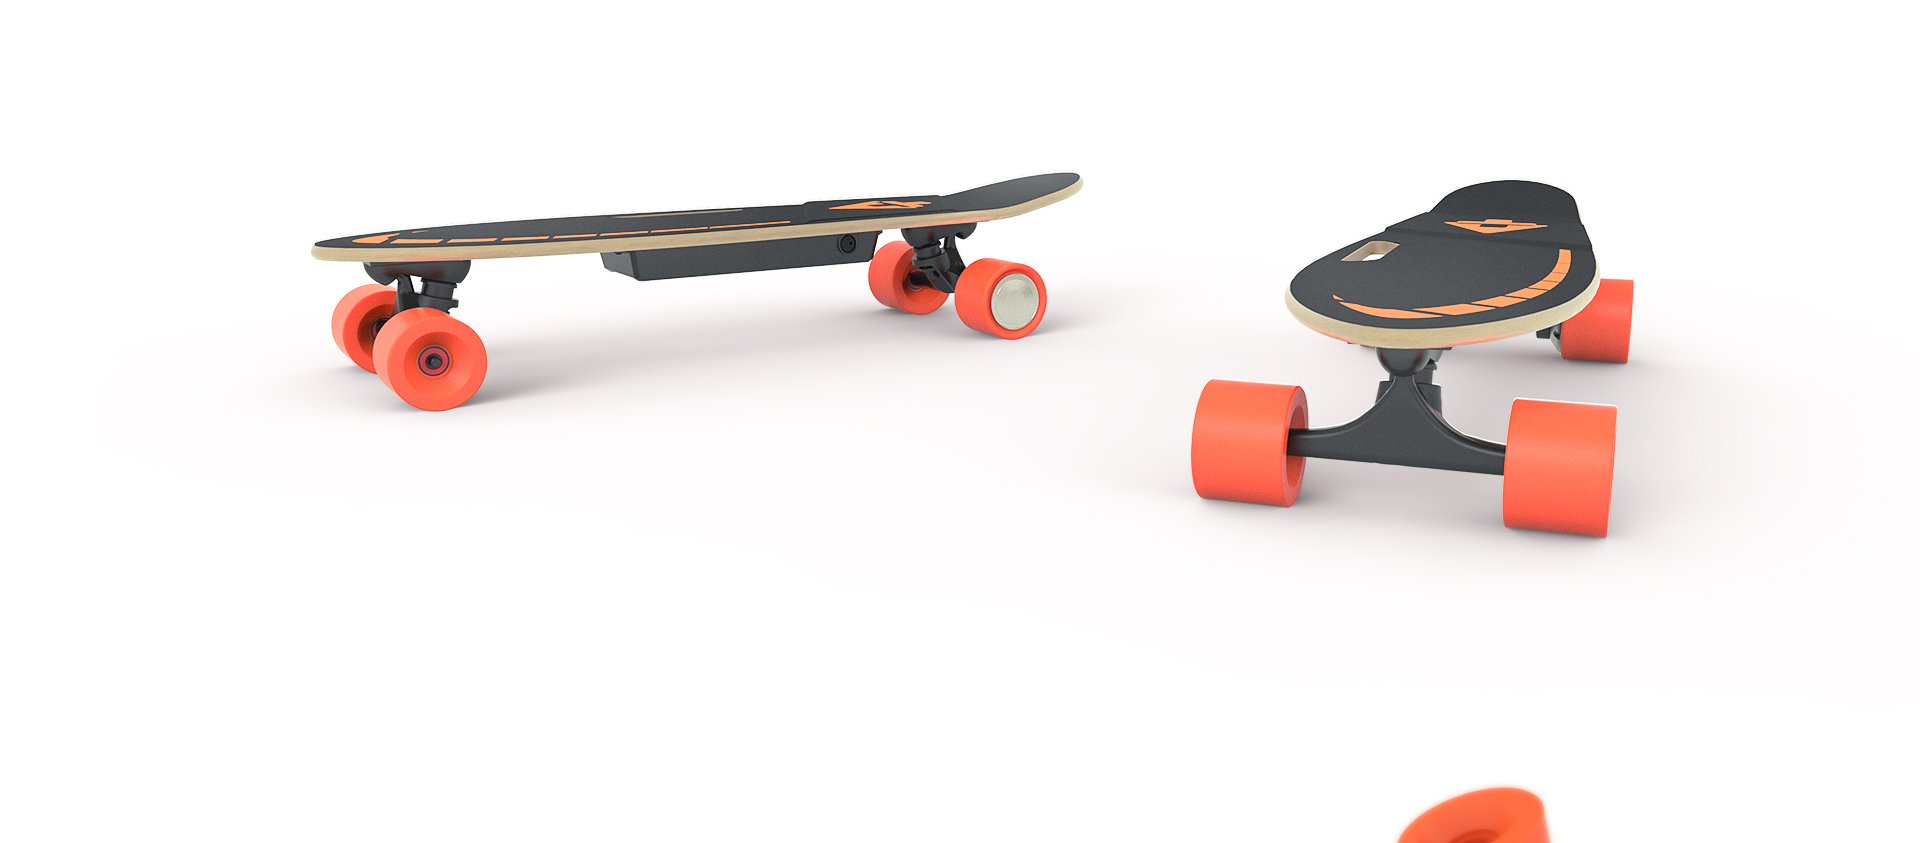 It is the first electric skateboard, created by INMOTION team. lightness、small、portable, as a personal transporter company with you, also to be a stunning fascinating toy.